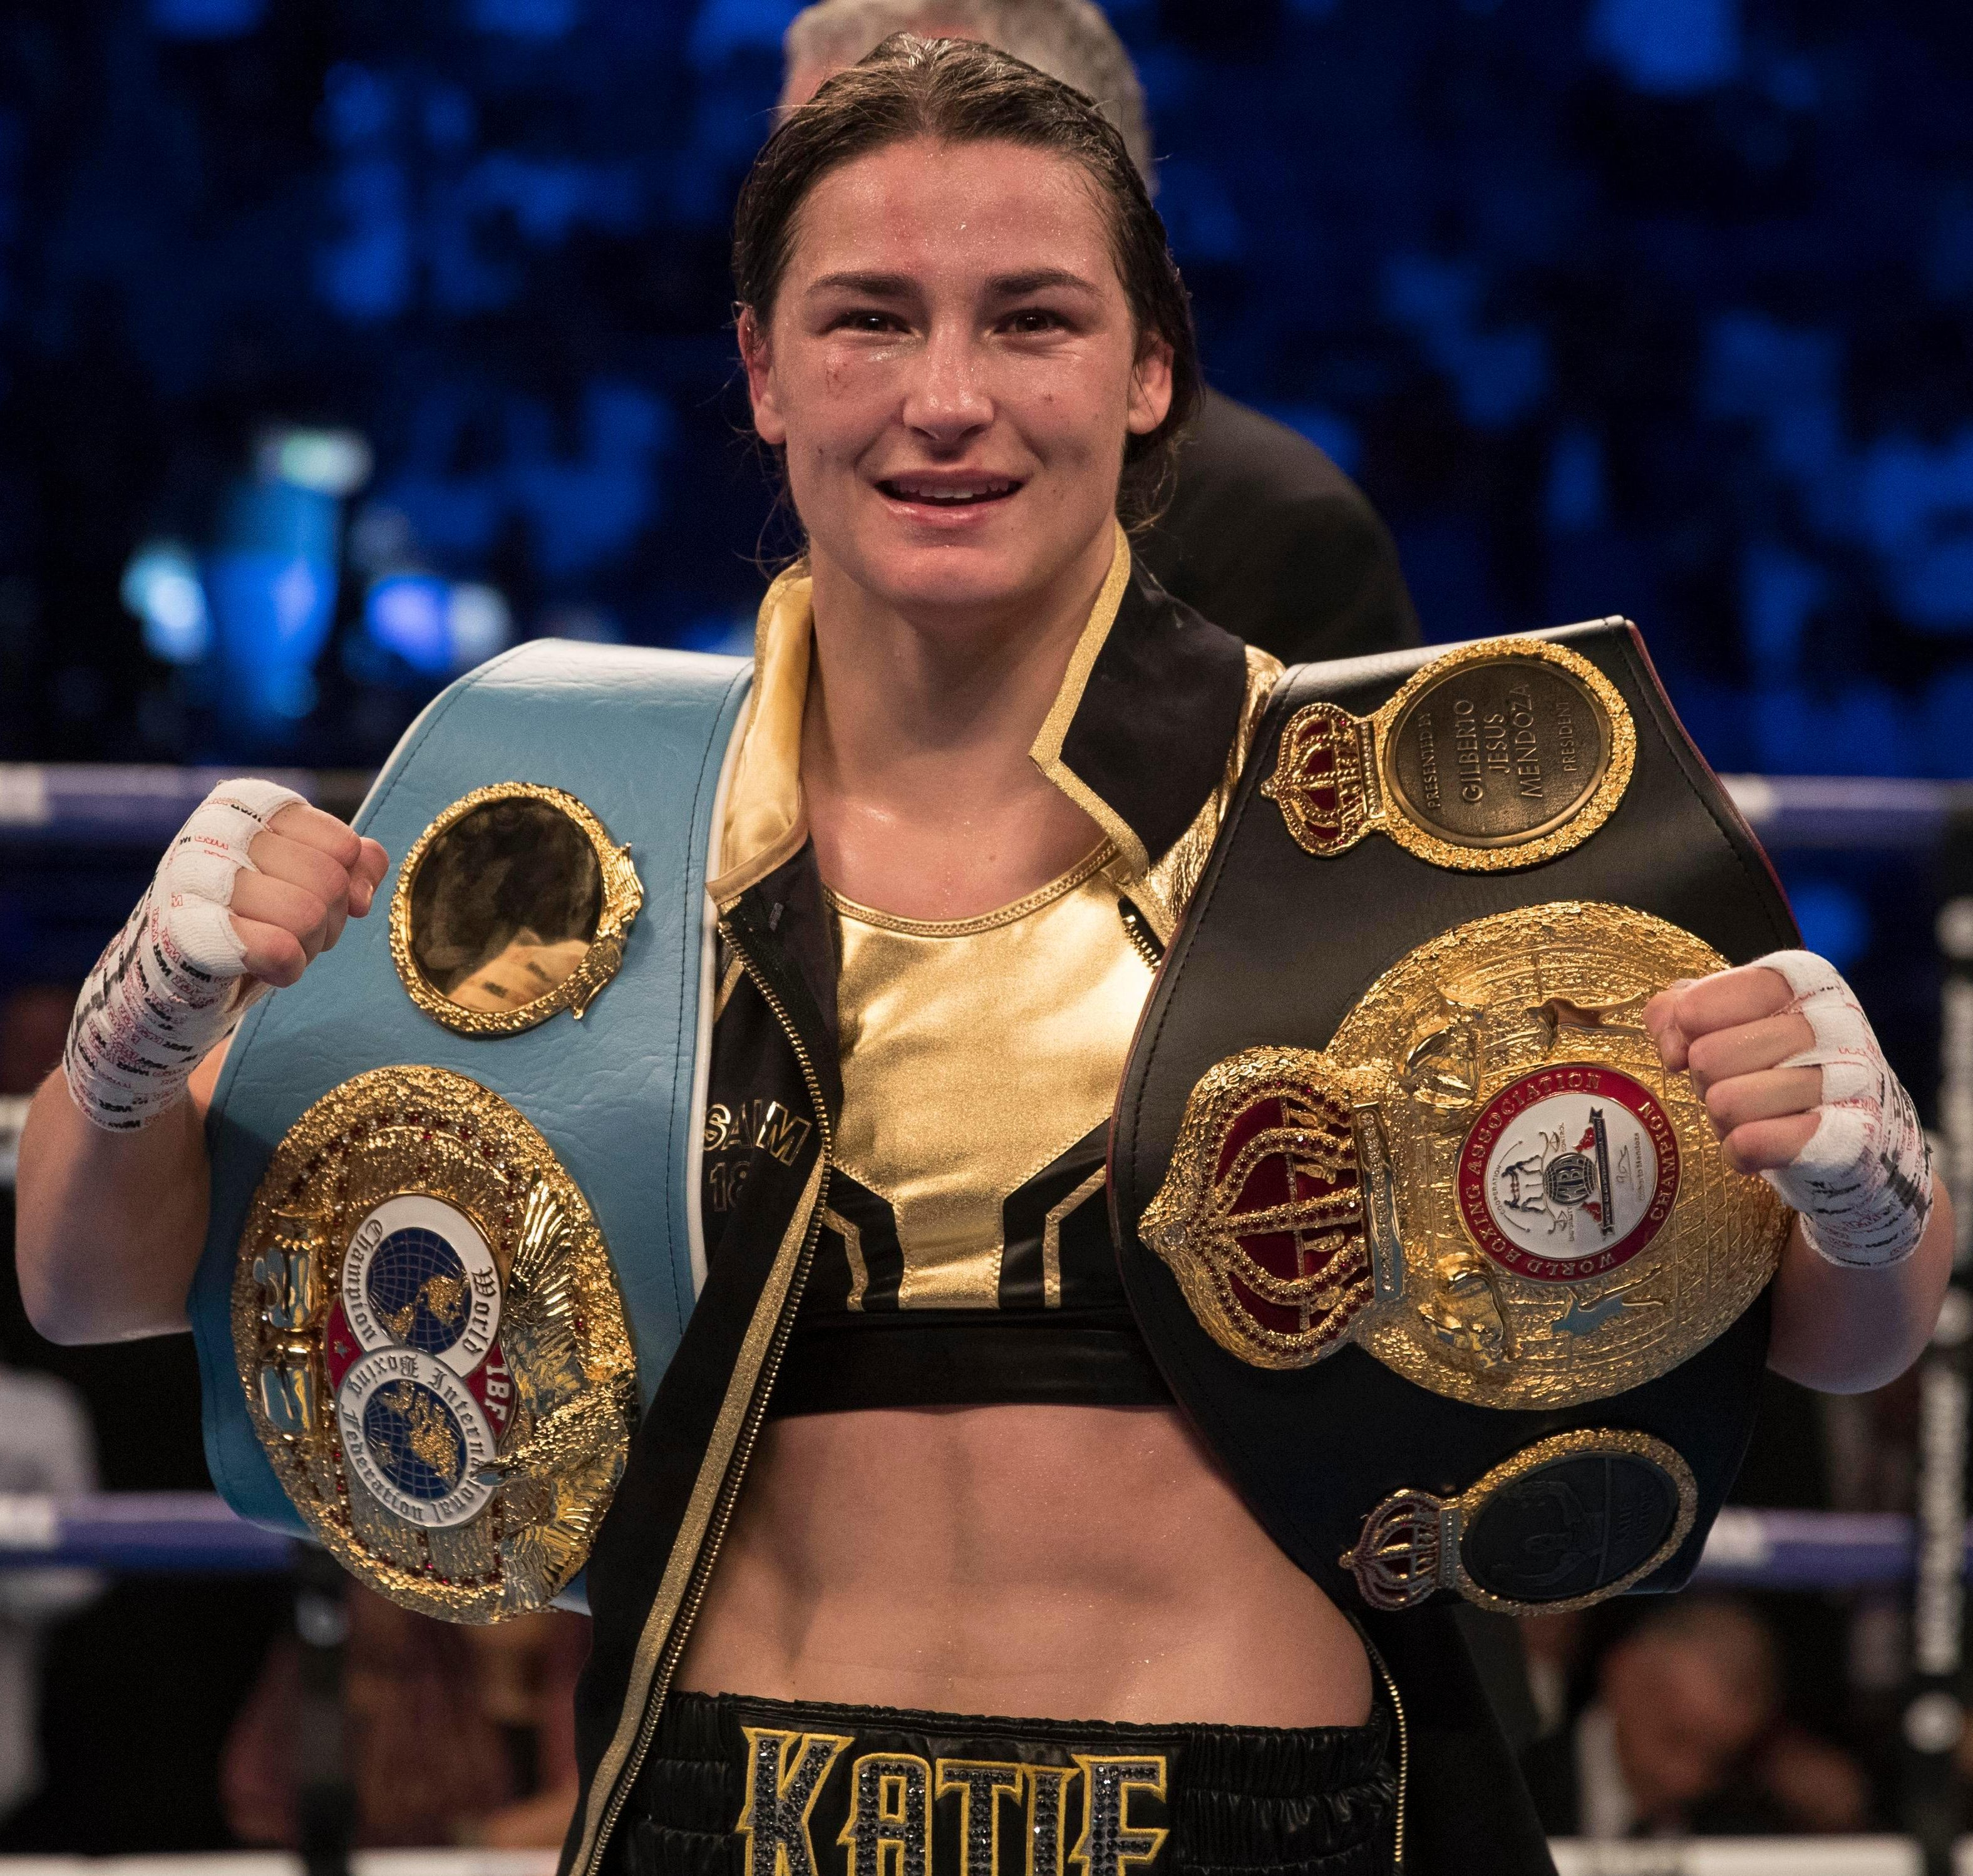 Taylor has an unblemished 10-fight record as a pro